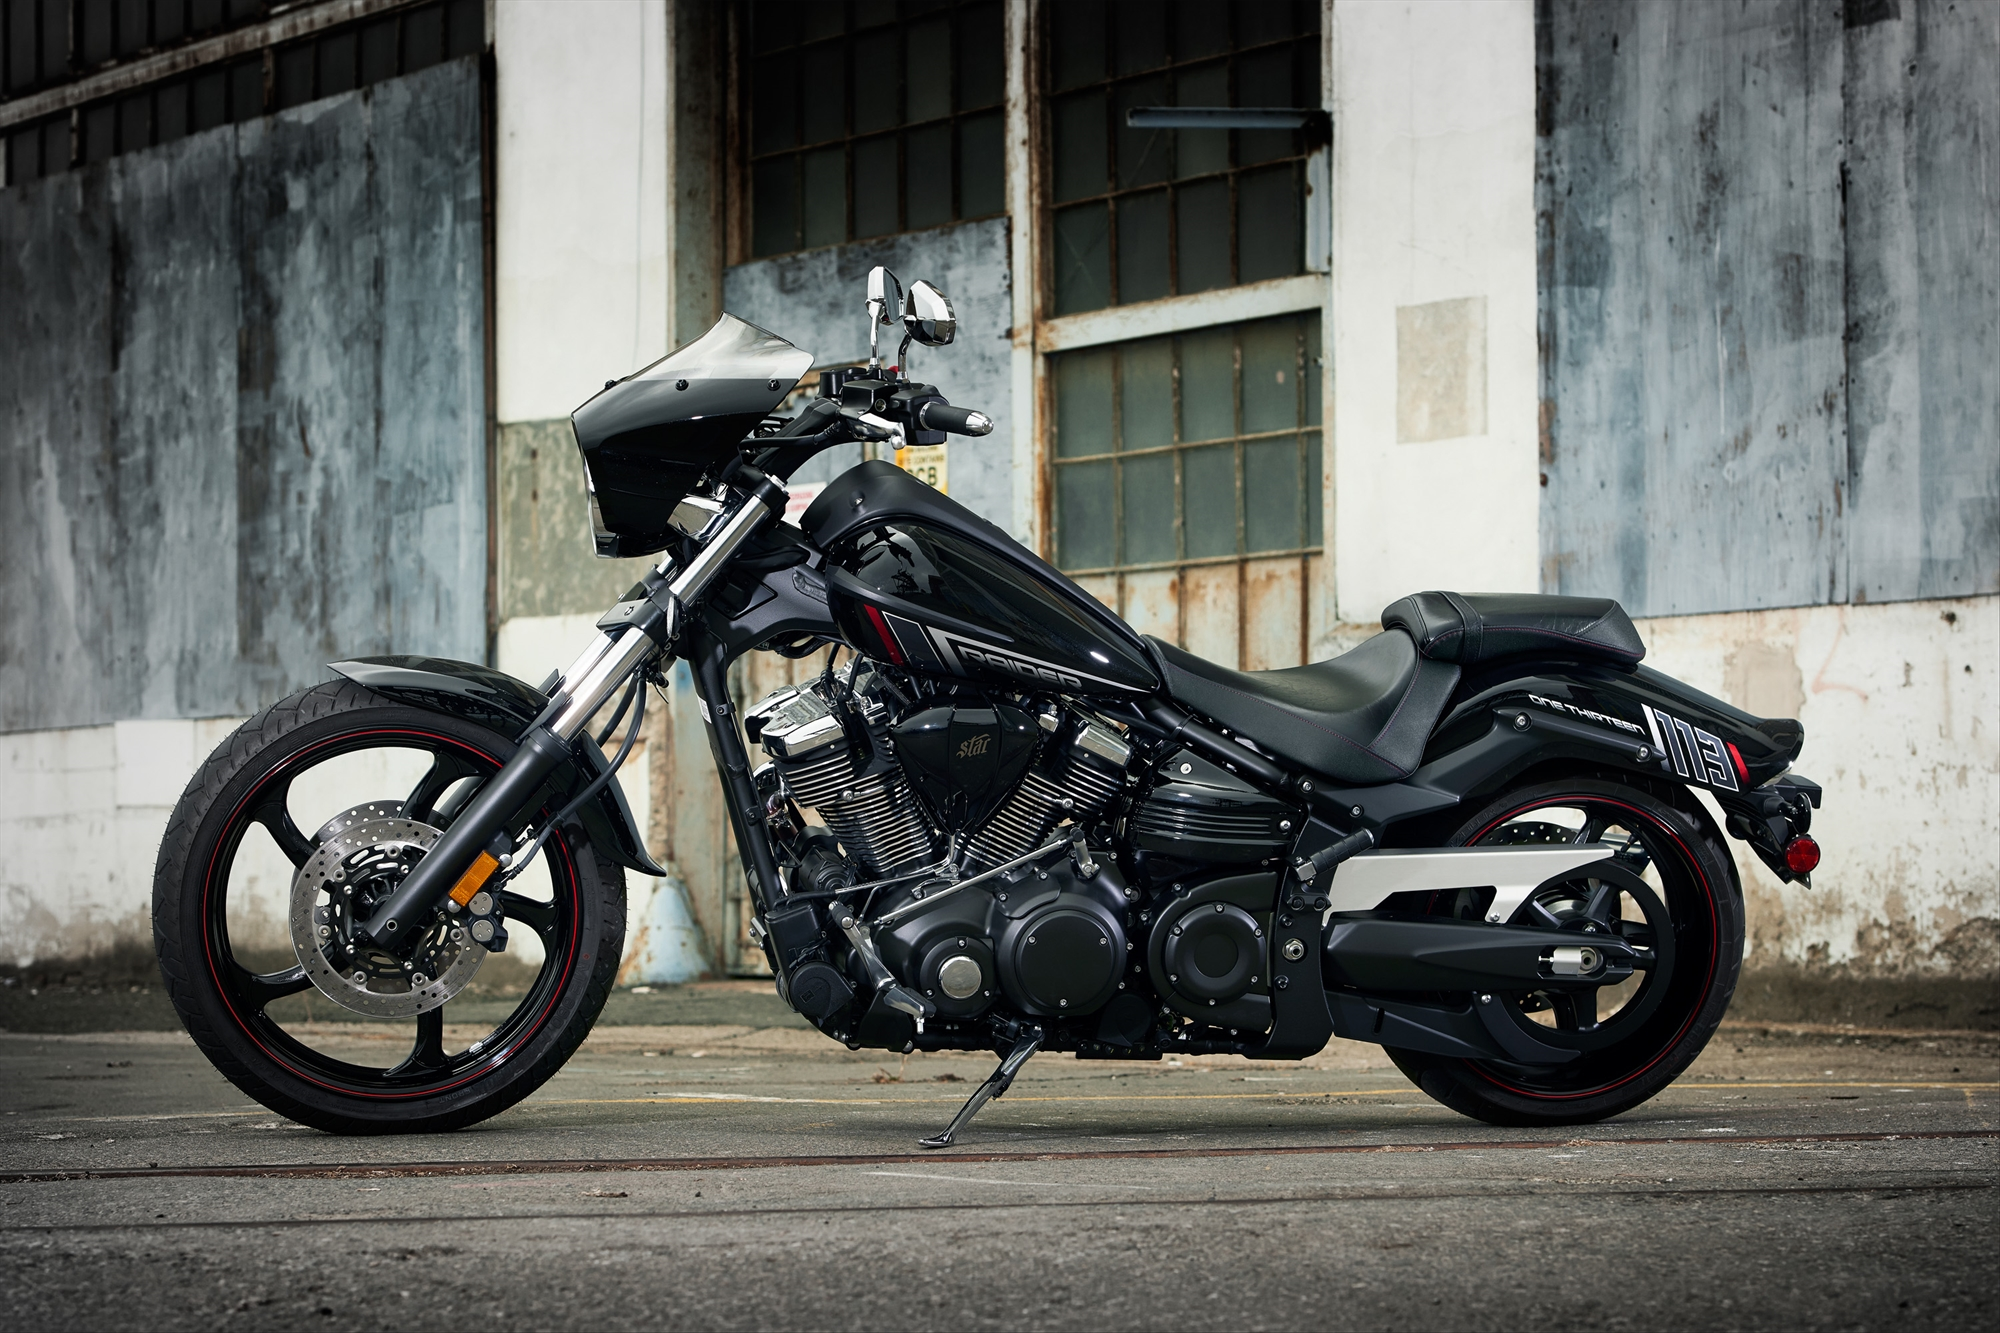 2015 Raider Bullet Cowl Packs Solid Chopper Looks Oozes